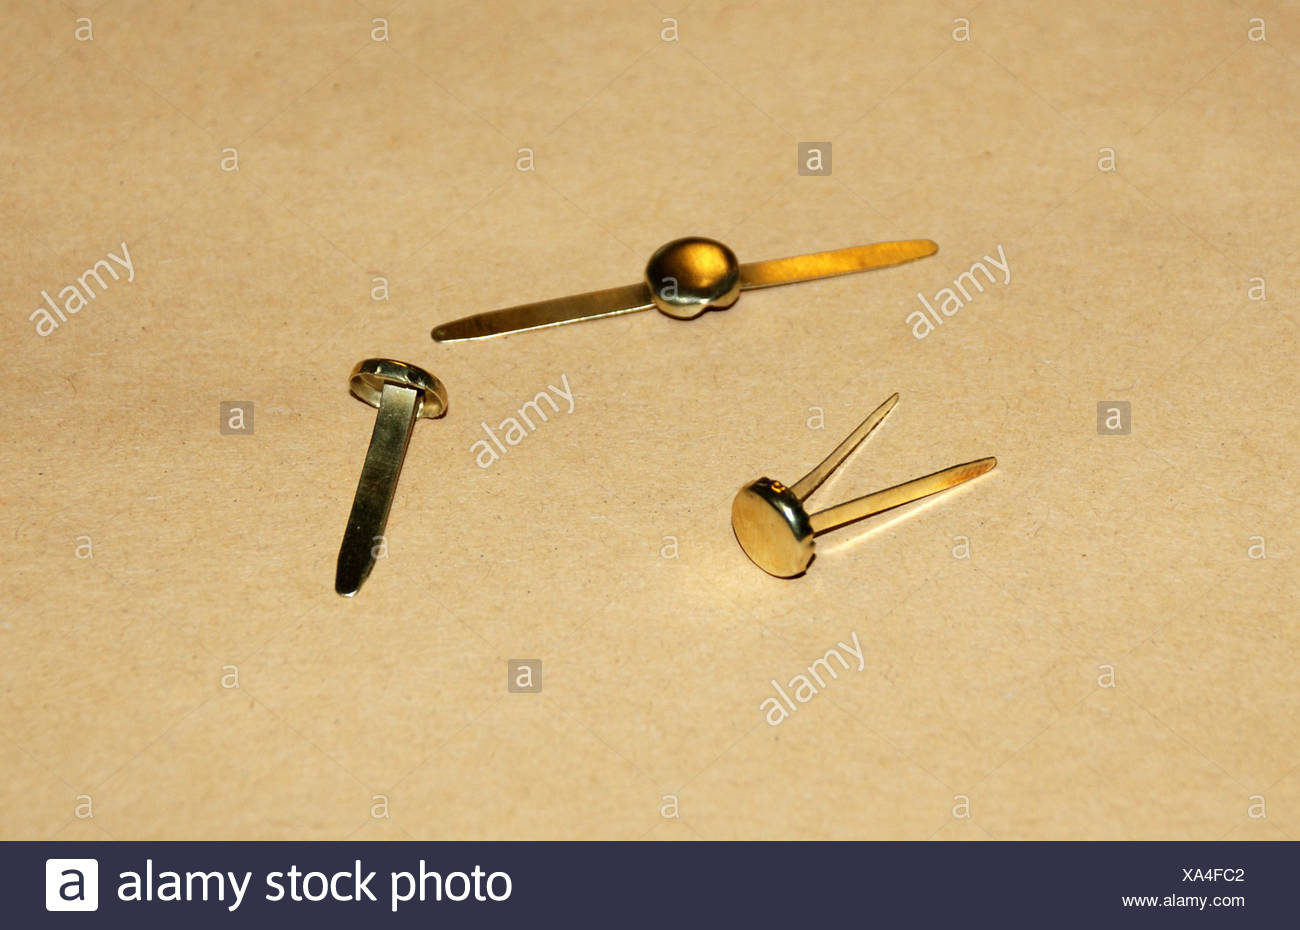 office, office supplies, paper fasteners, Additional-Rights-Clearance-Info-Not-Available - Stock Image